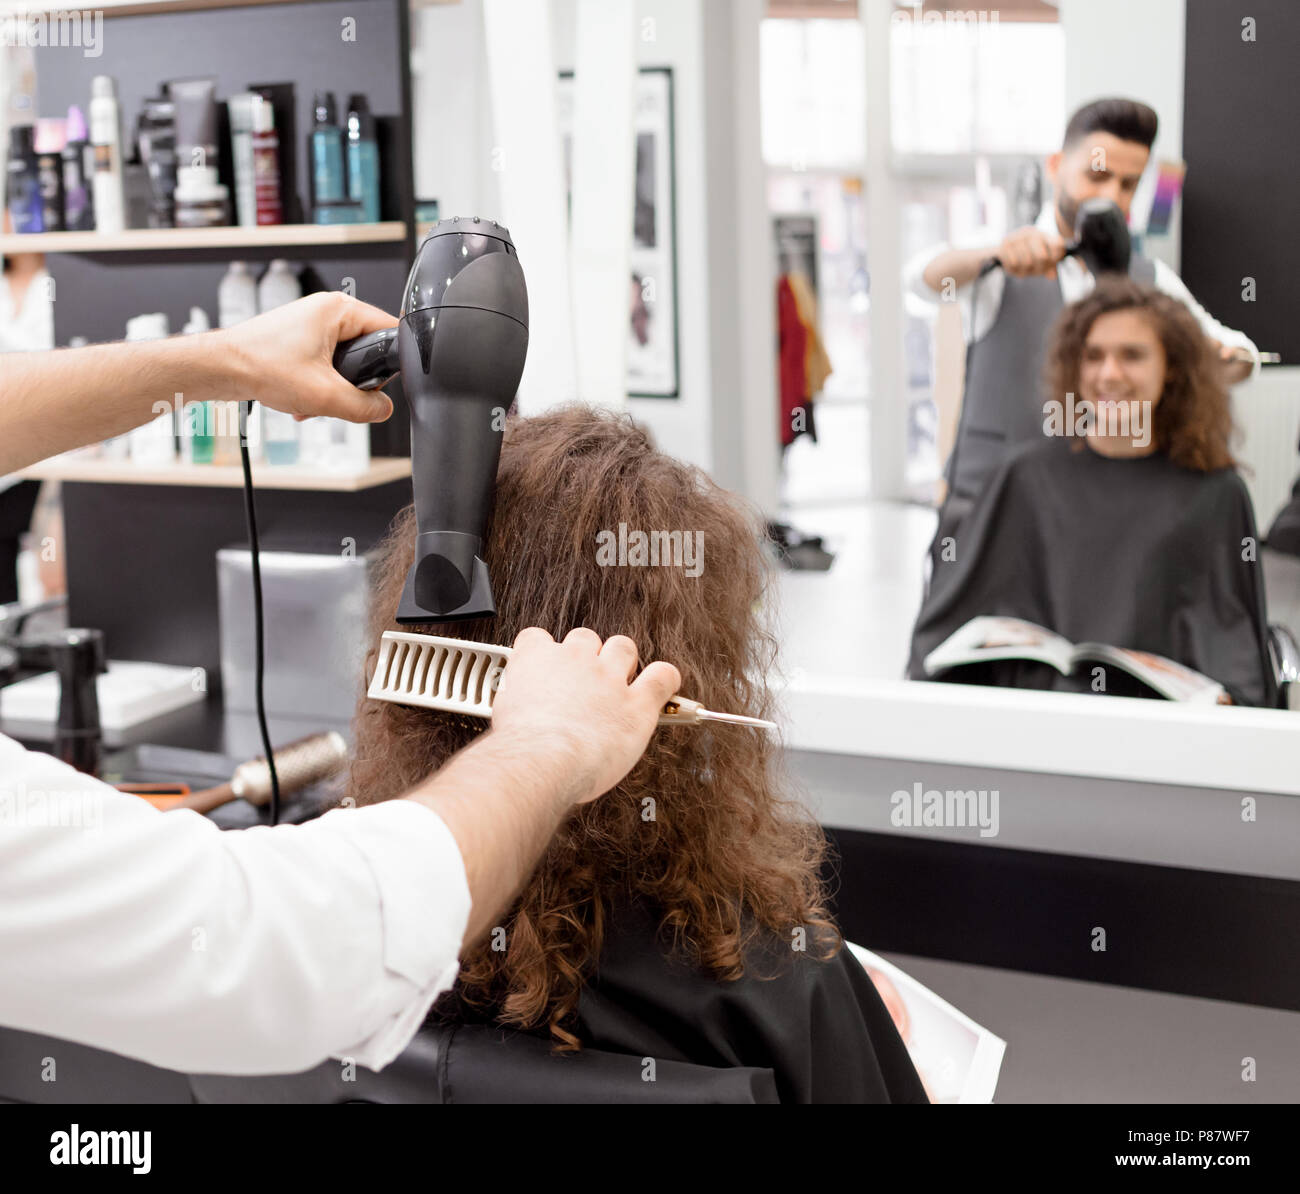 Backview Of Hairstyler Drying Female Clients Curly Hair Blurred